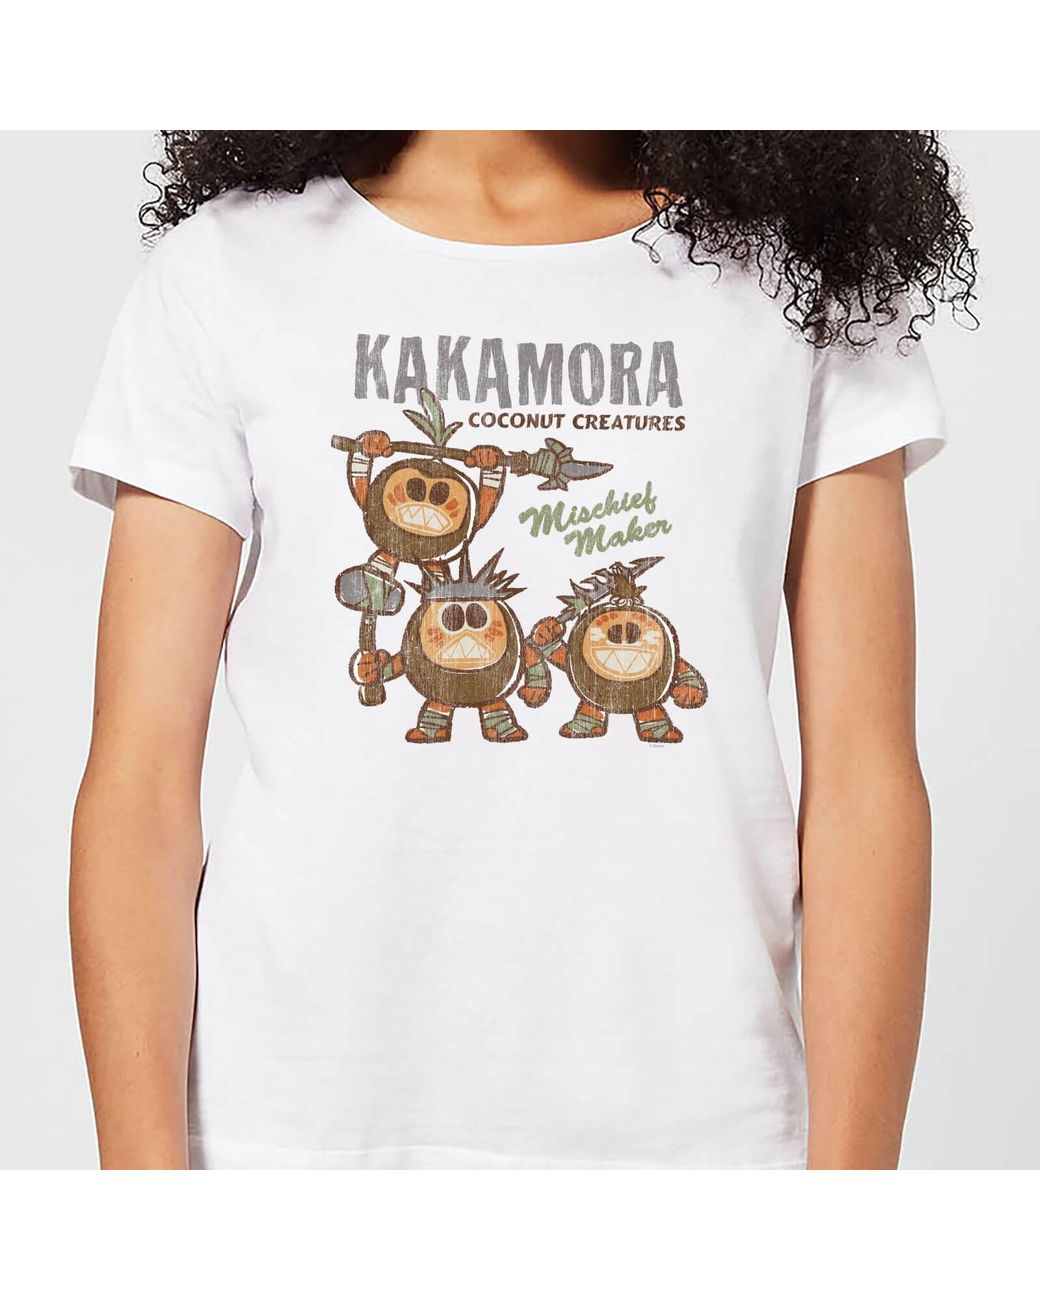 image about Kakamora Printable known as Womens White Moana Kakamora Mischief Manufacturer T-blouse